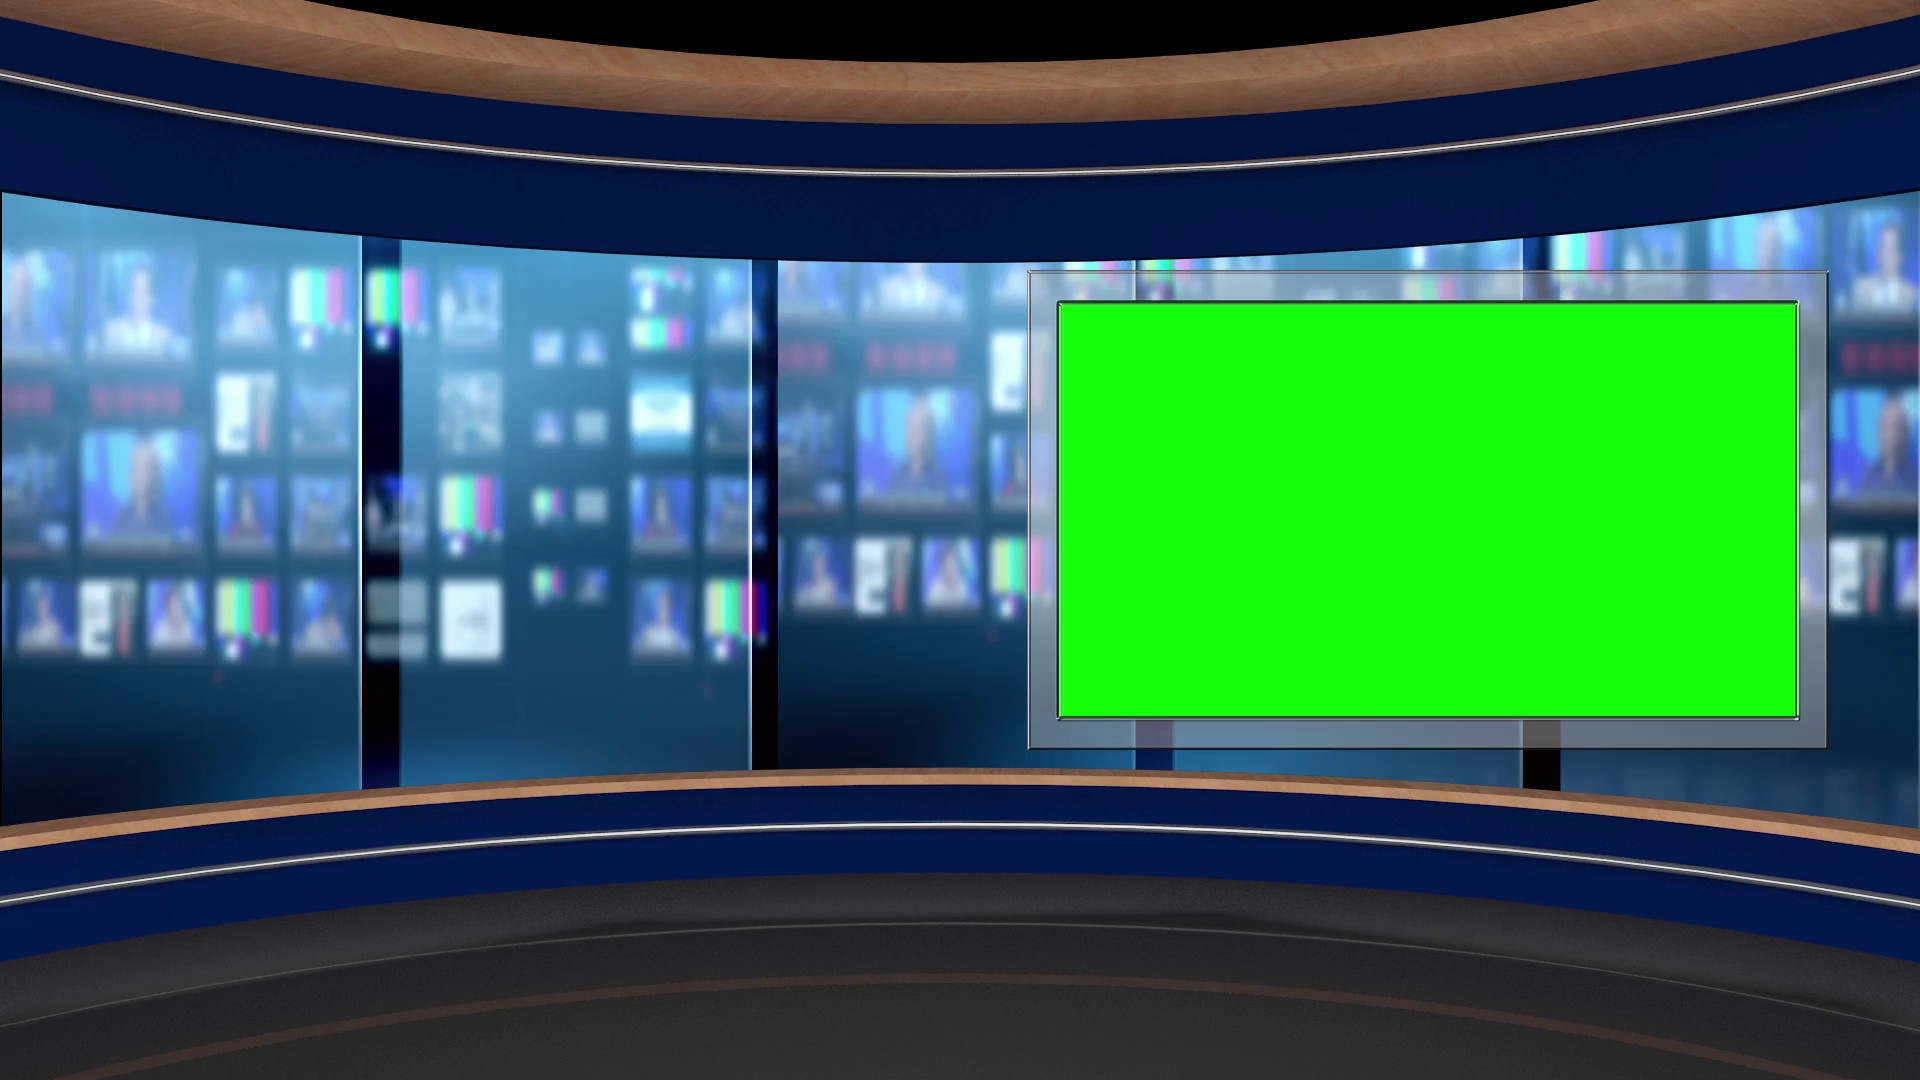 1920x1080 125 Hd News Tv Virtual Studio Green Screen Background Blue Control Room Monitor Motion Background